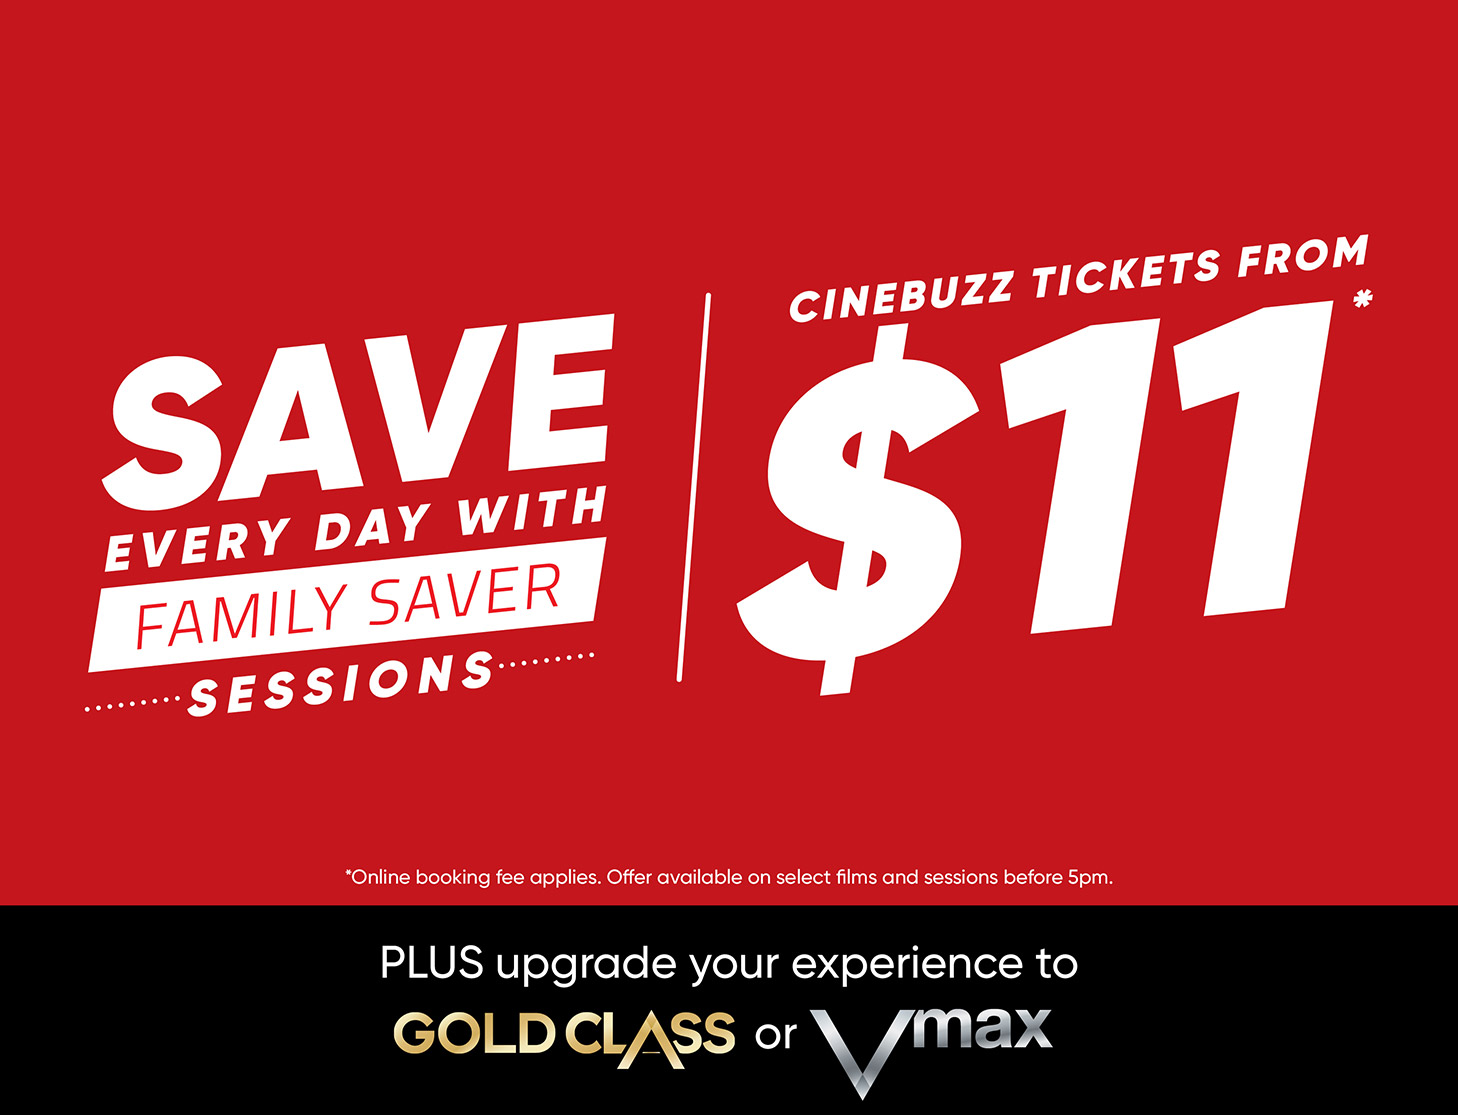 EVENT CINEMAS FAMILY SAVER SESSIONS!